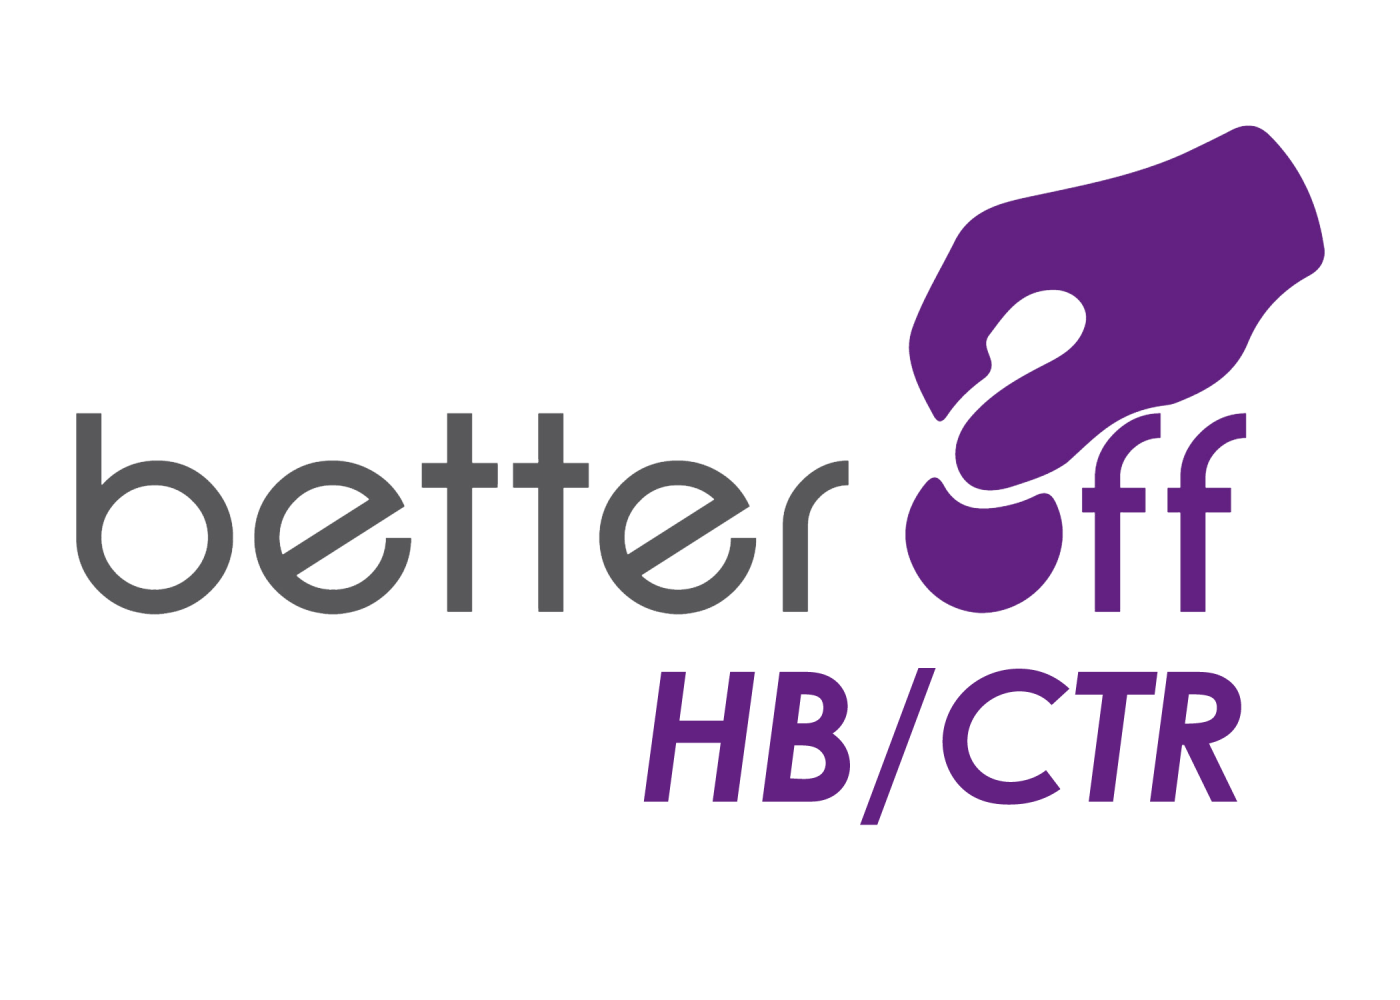 Products: BetterOff: HB/CTR